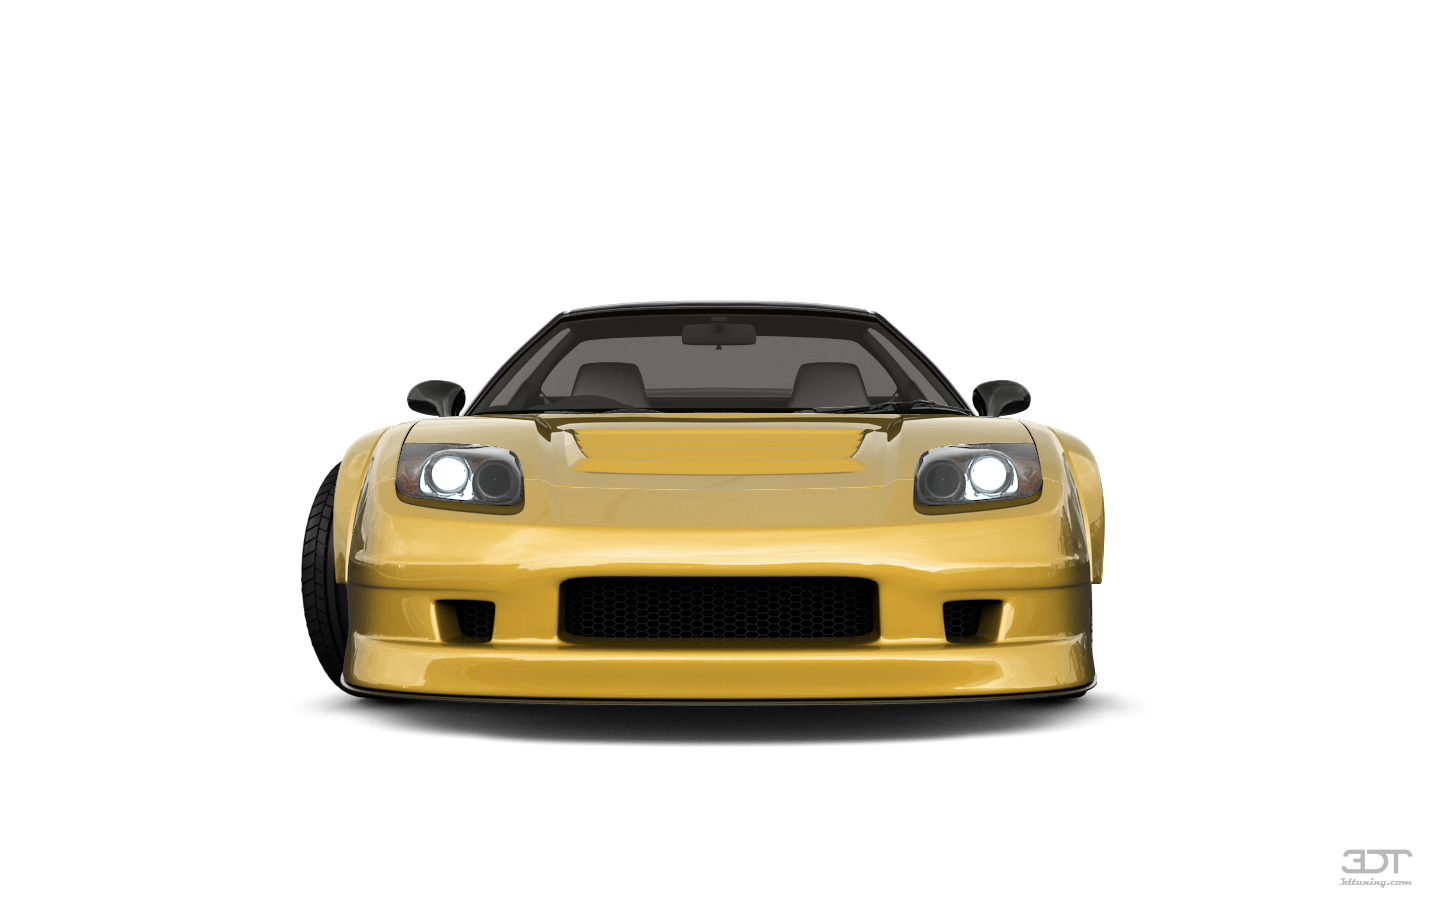 Honda NSX-R 2 Door Coupe 2005